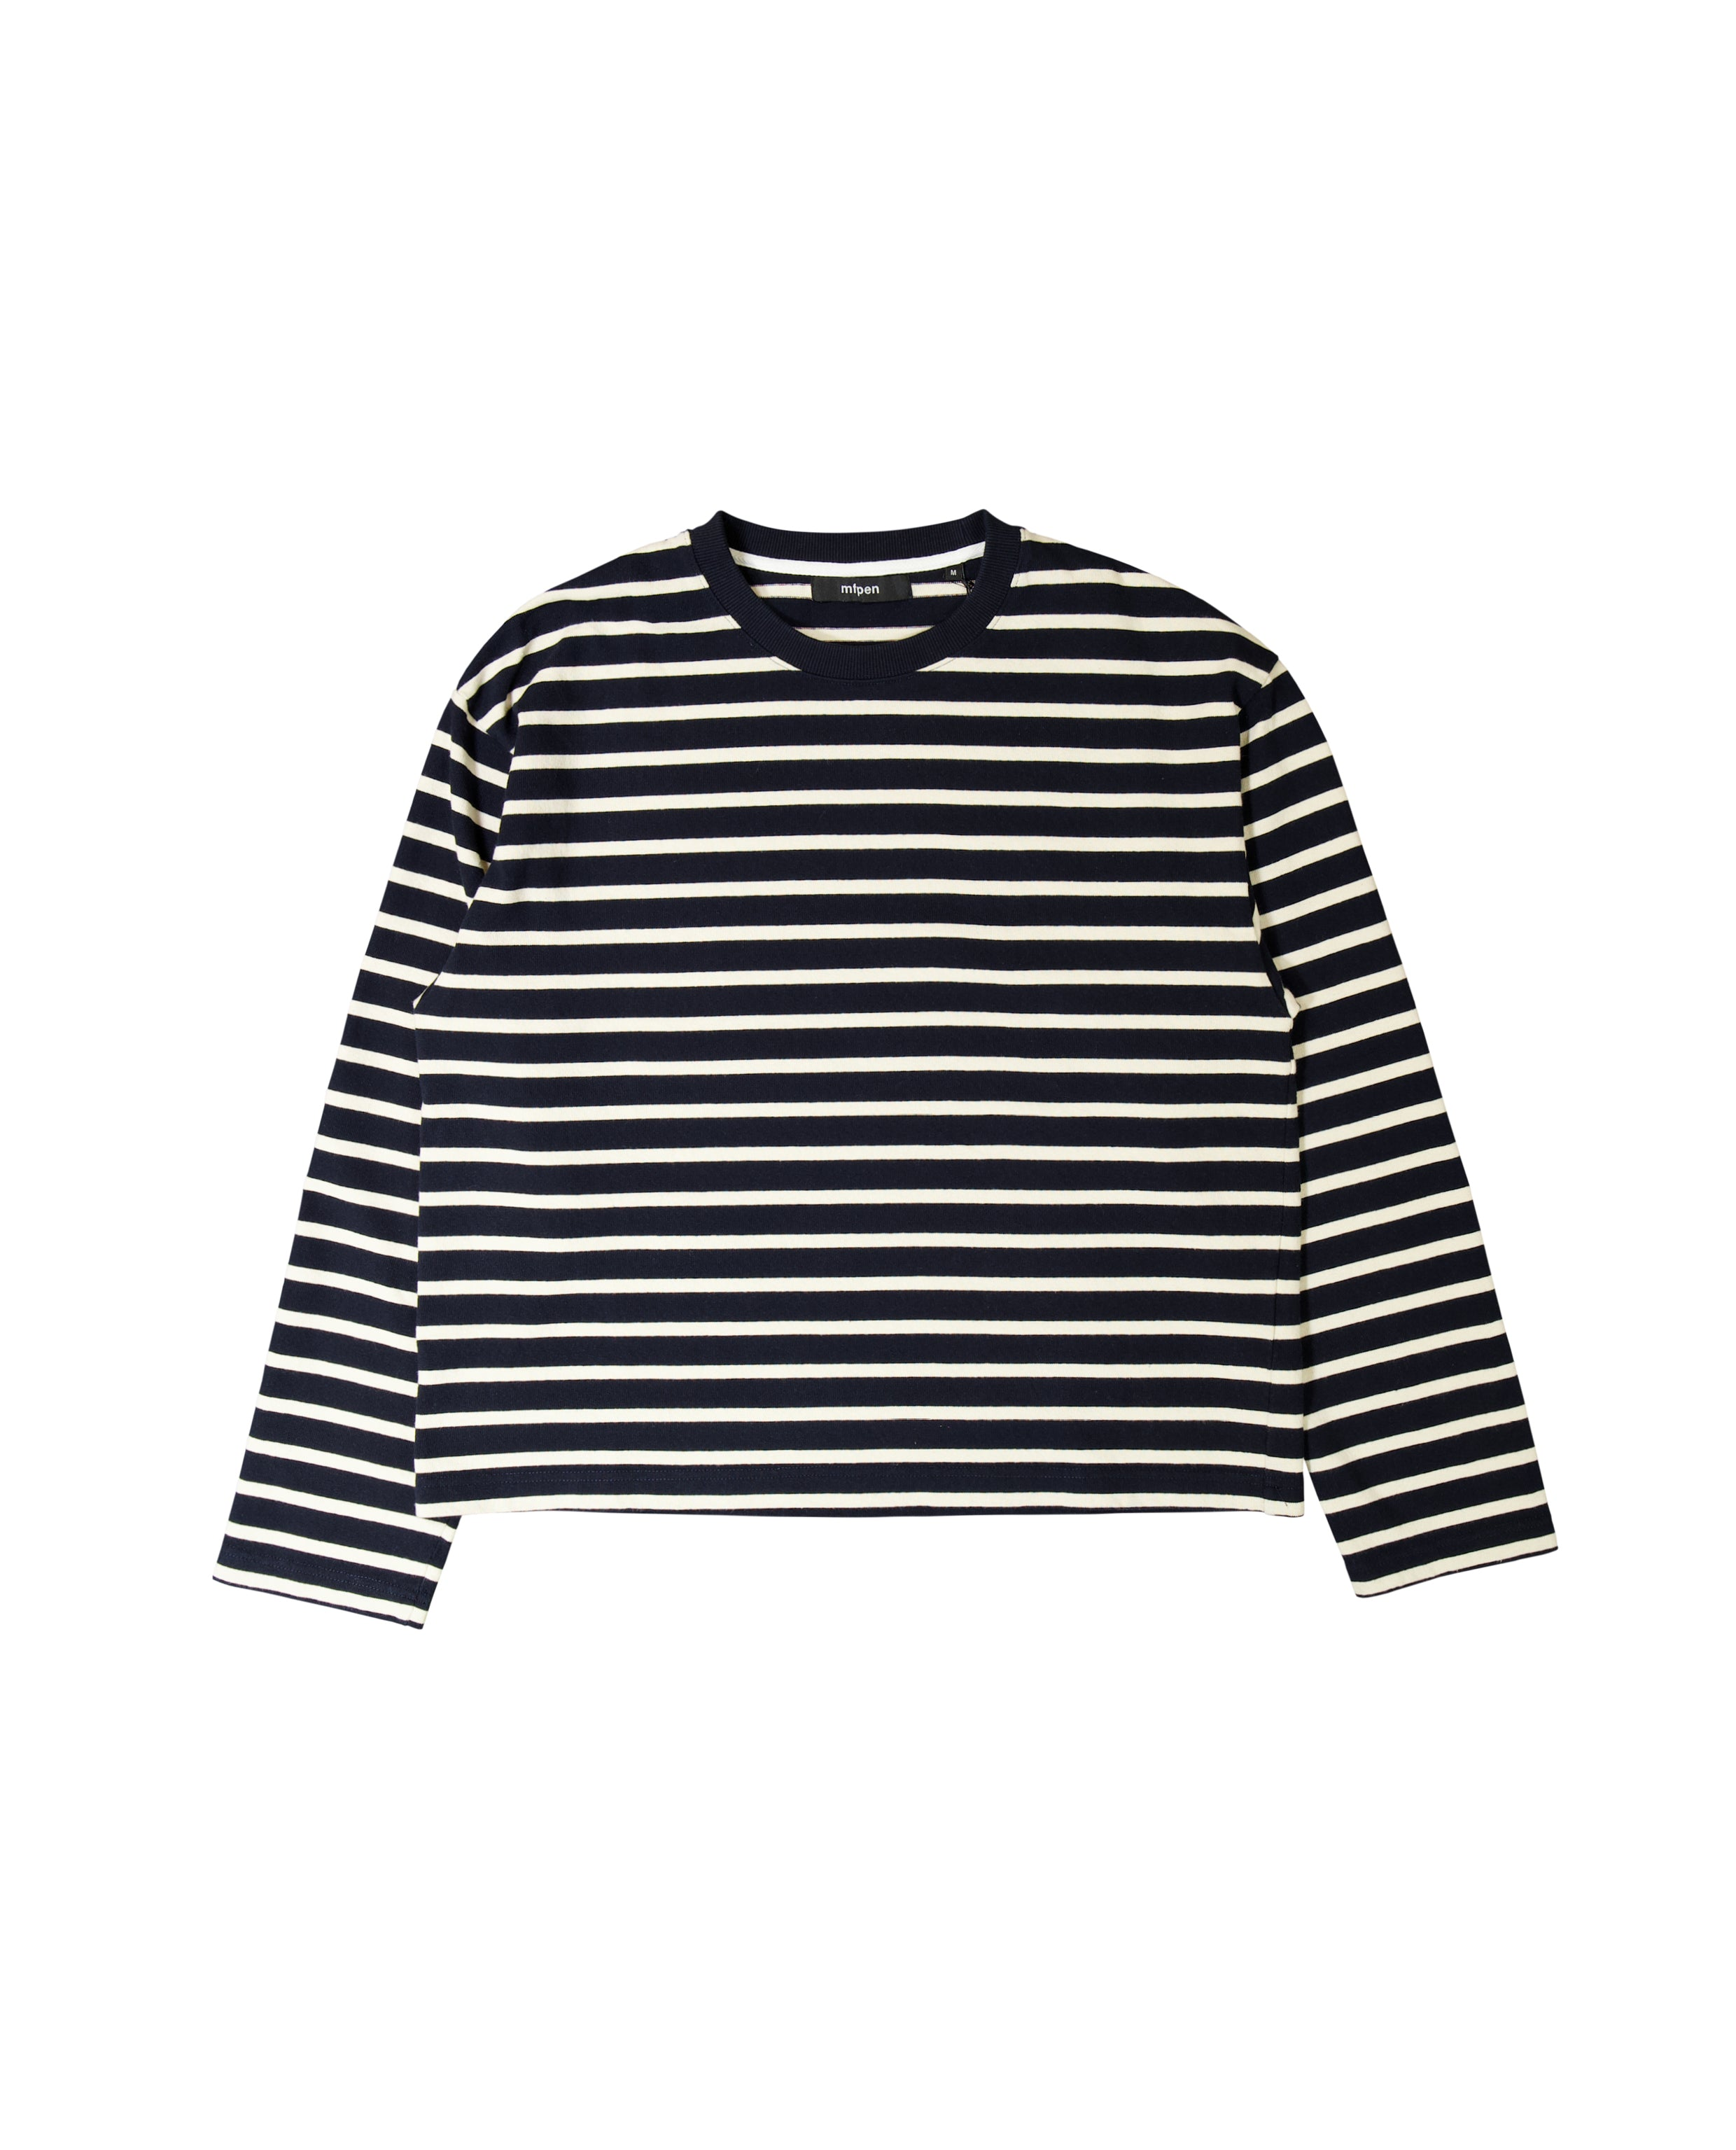 OZ LS TEE - DARK NAVY/WHITE